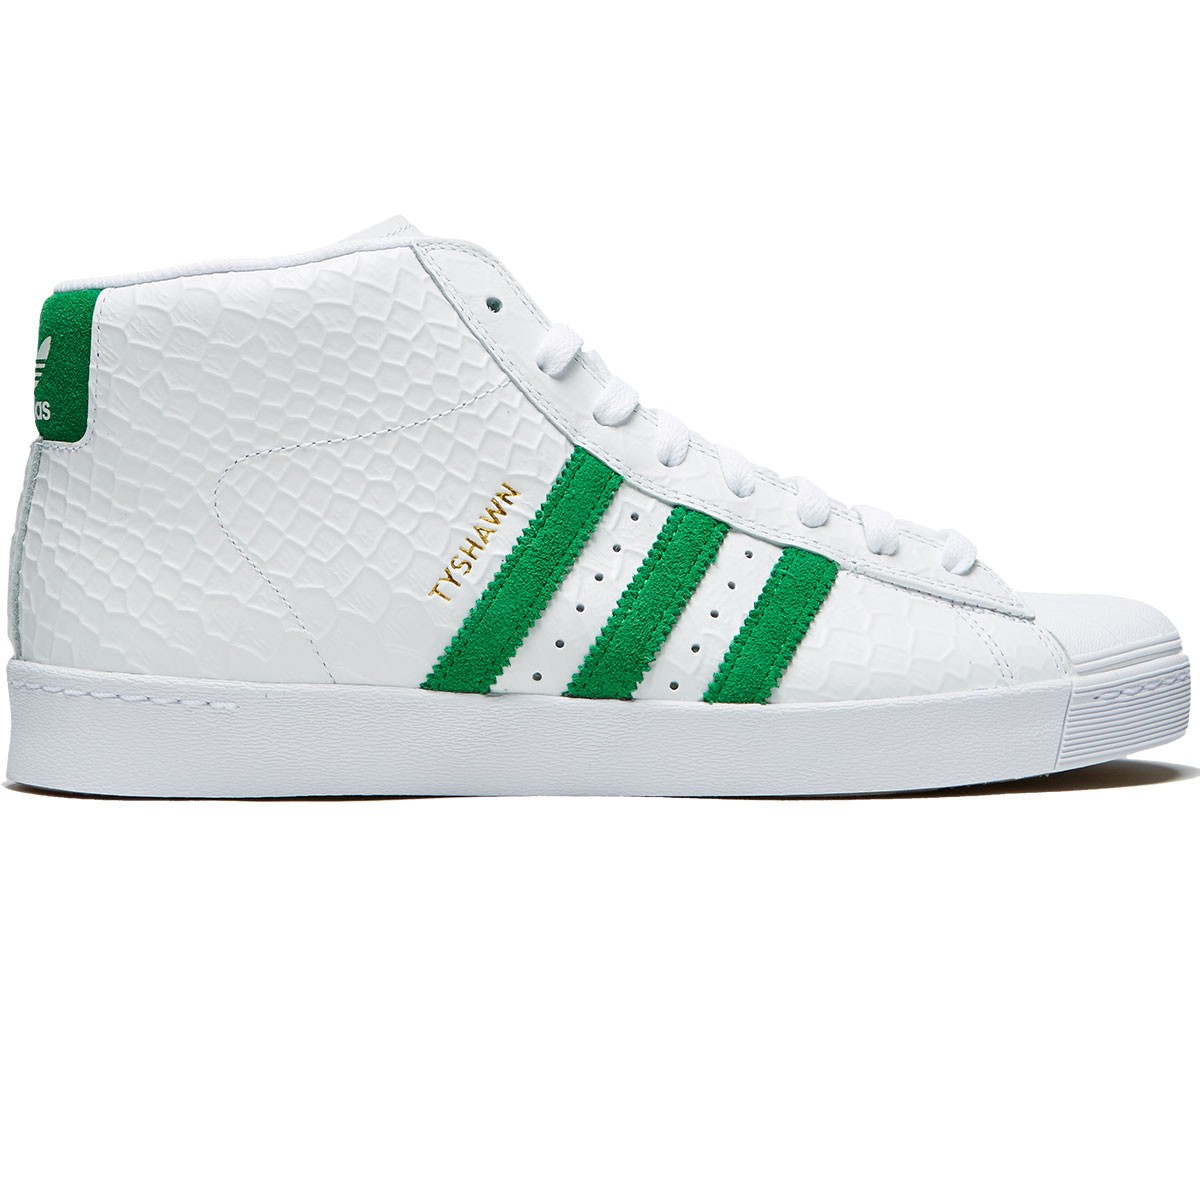 Adidas Tyshawn Pro Model Vulc Adv Shoes - White Green Chalk White - 10.0 39064b117